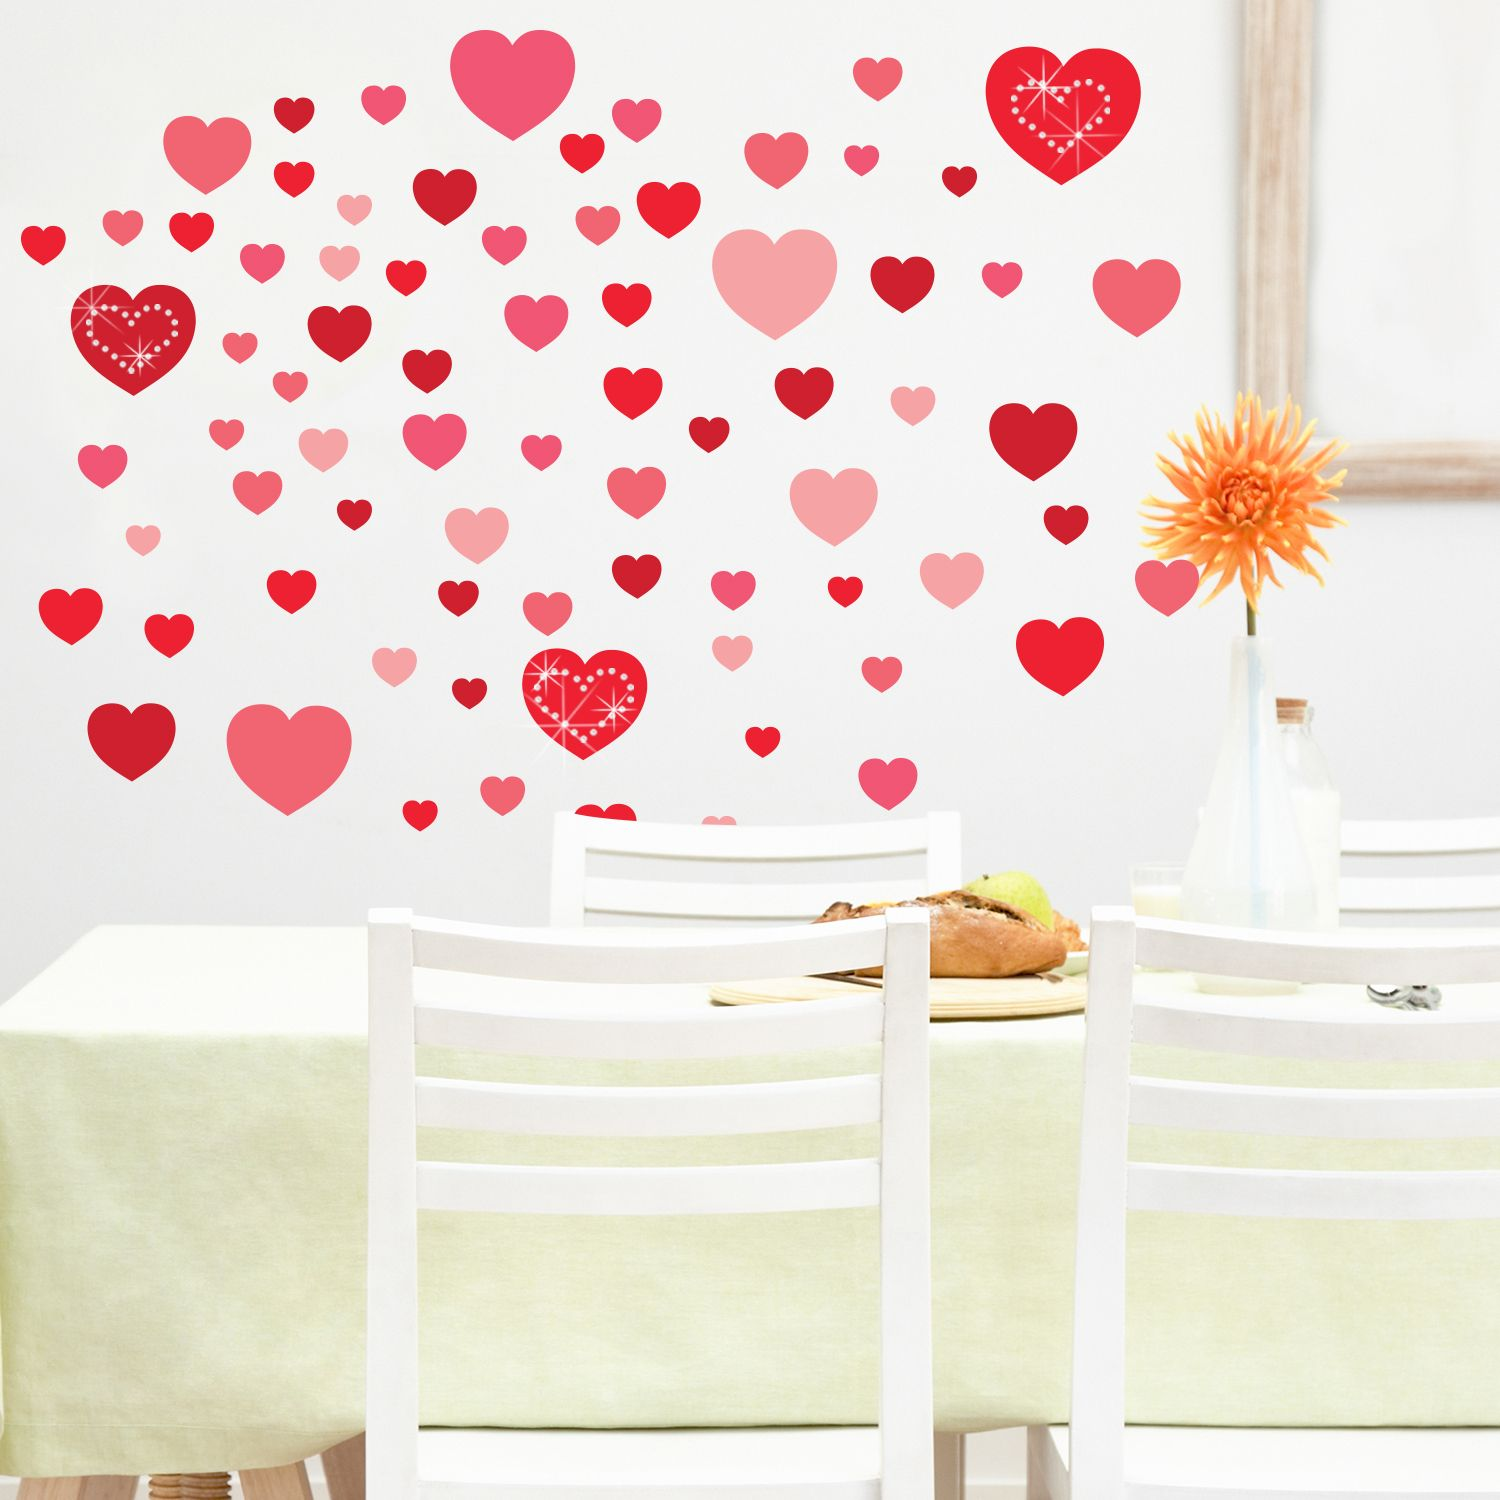 Hearts and White Swarovski Hearts Wall Sticker